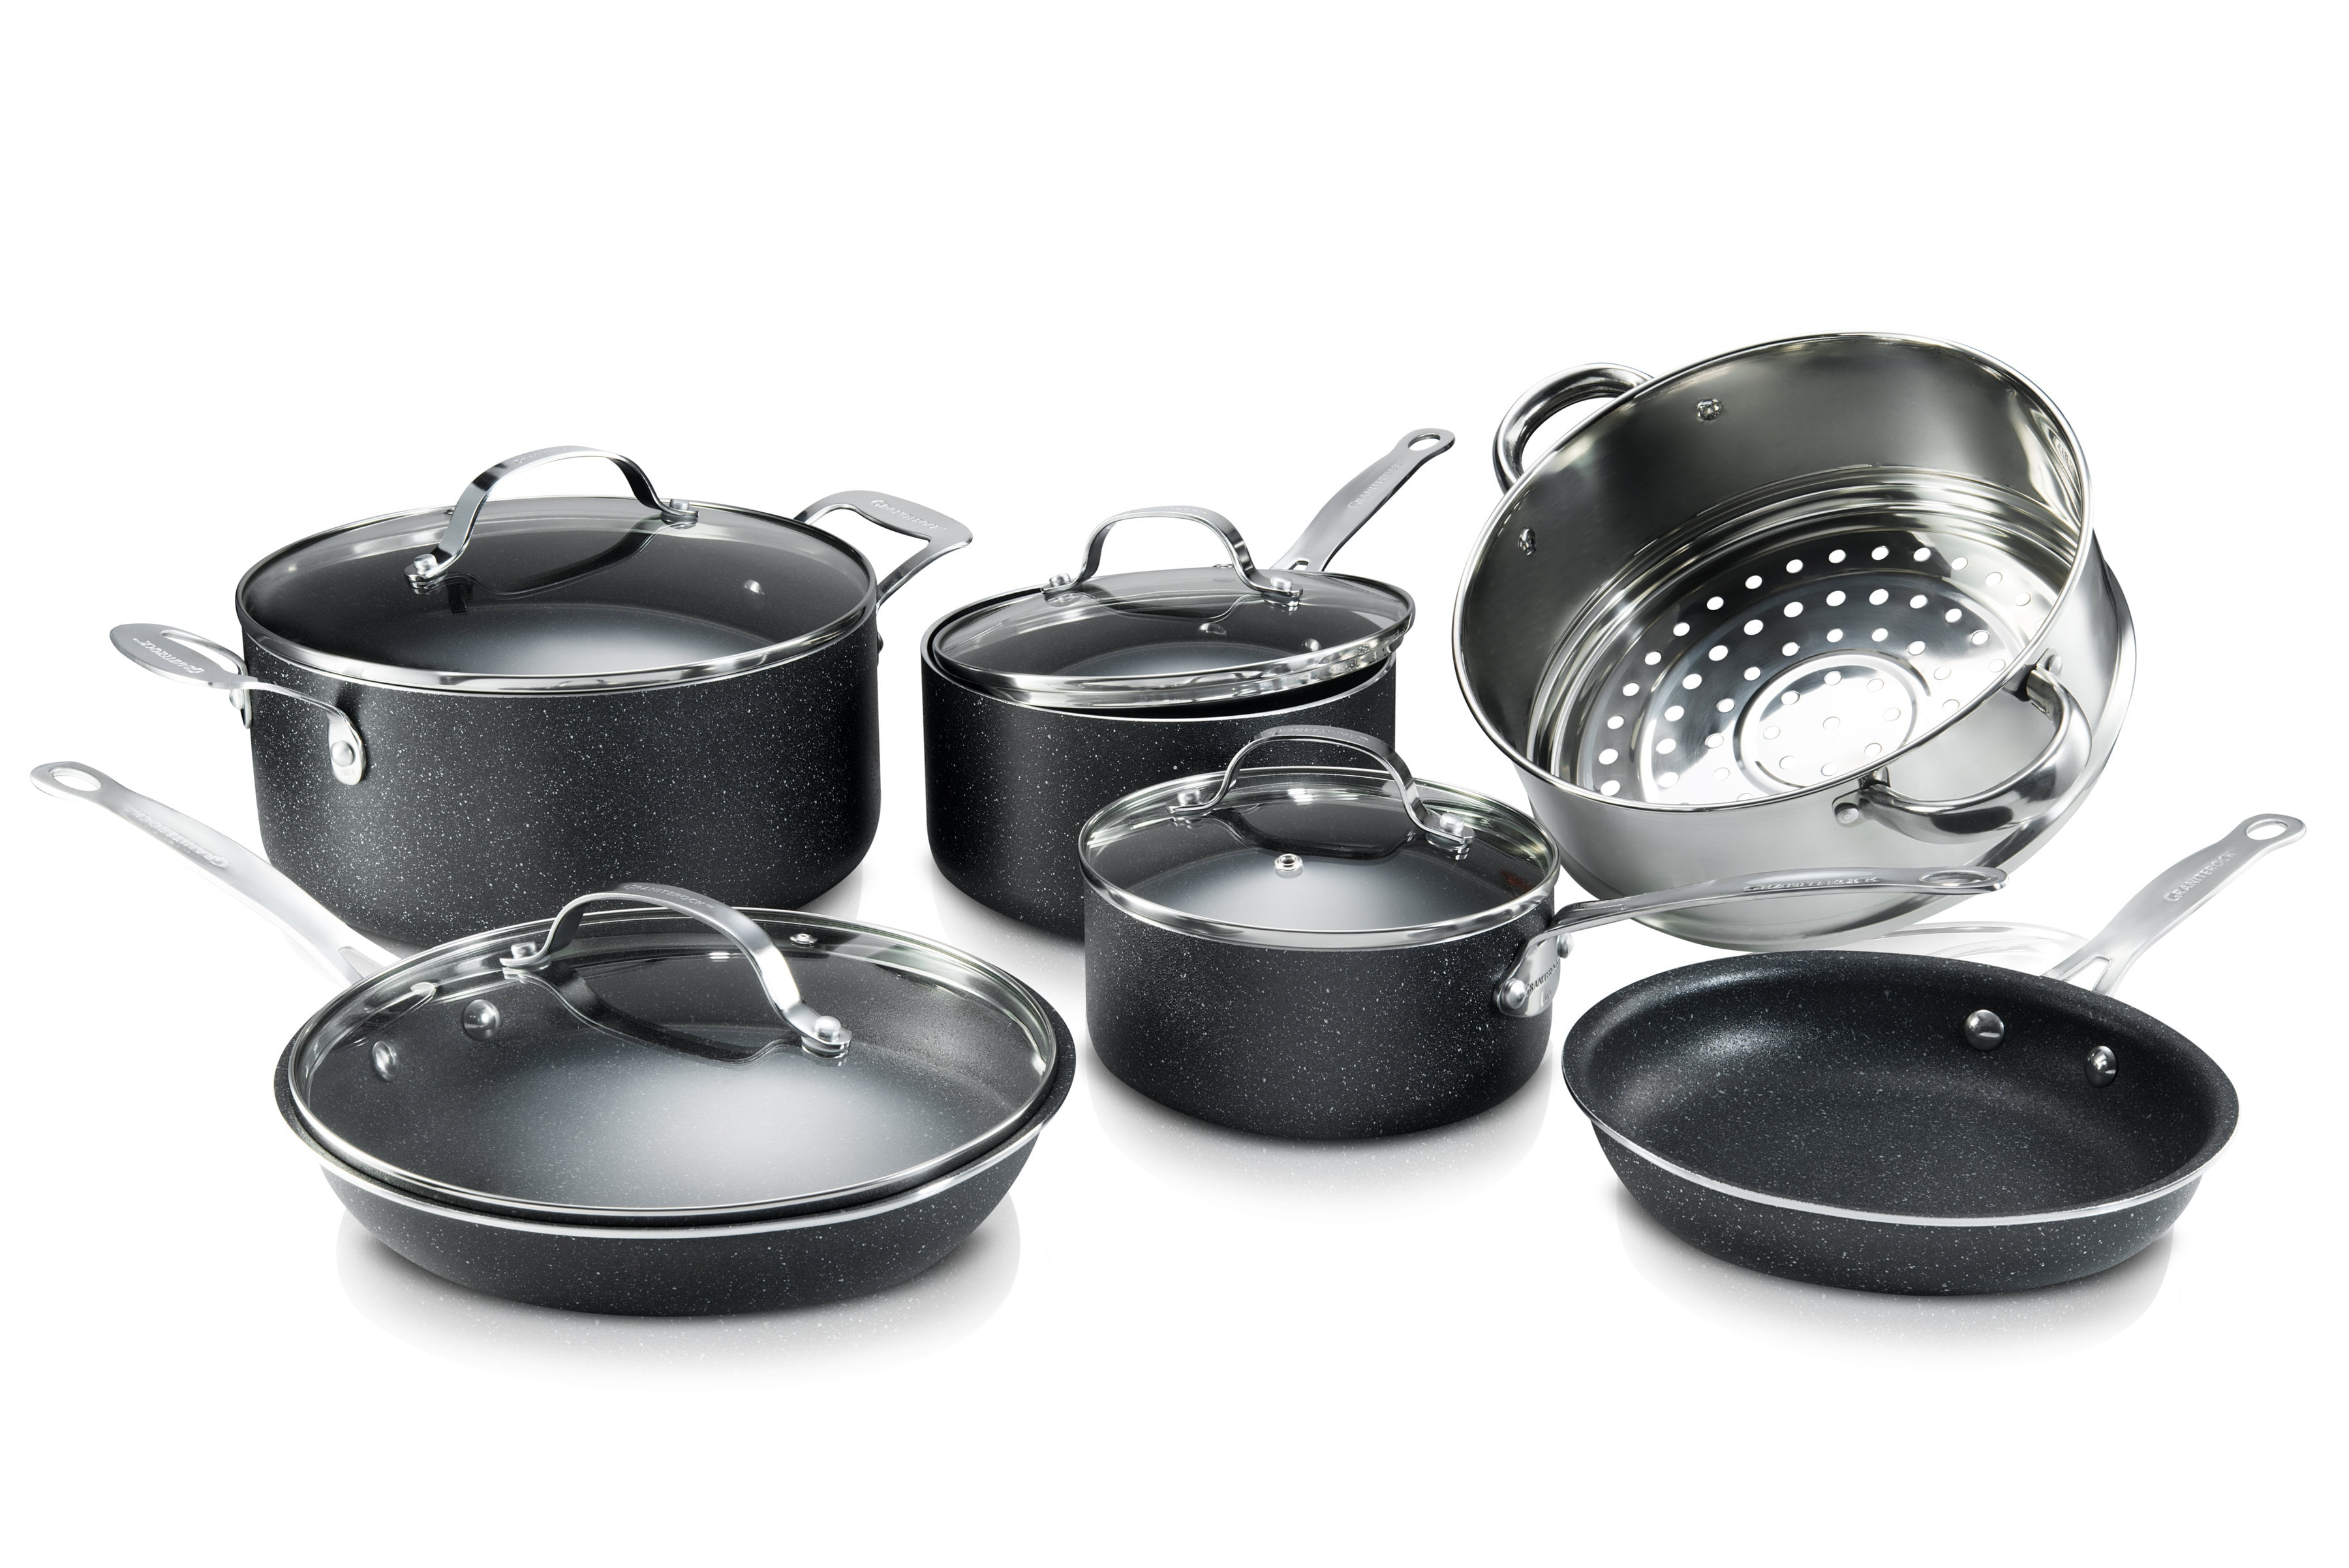 Granite Stone 10 Piece Nonstick Pots And Pans Cookware Set Ultimate Durability And Nonstick With Mineral Diamond Triple Coated Walmart Com Walmart Com